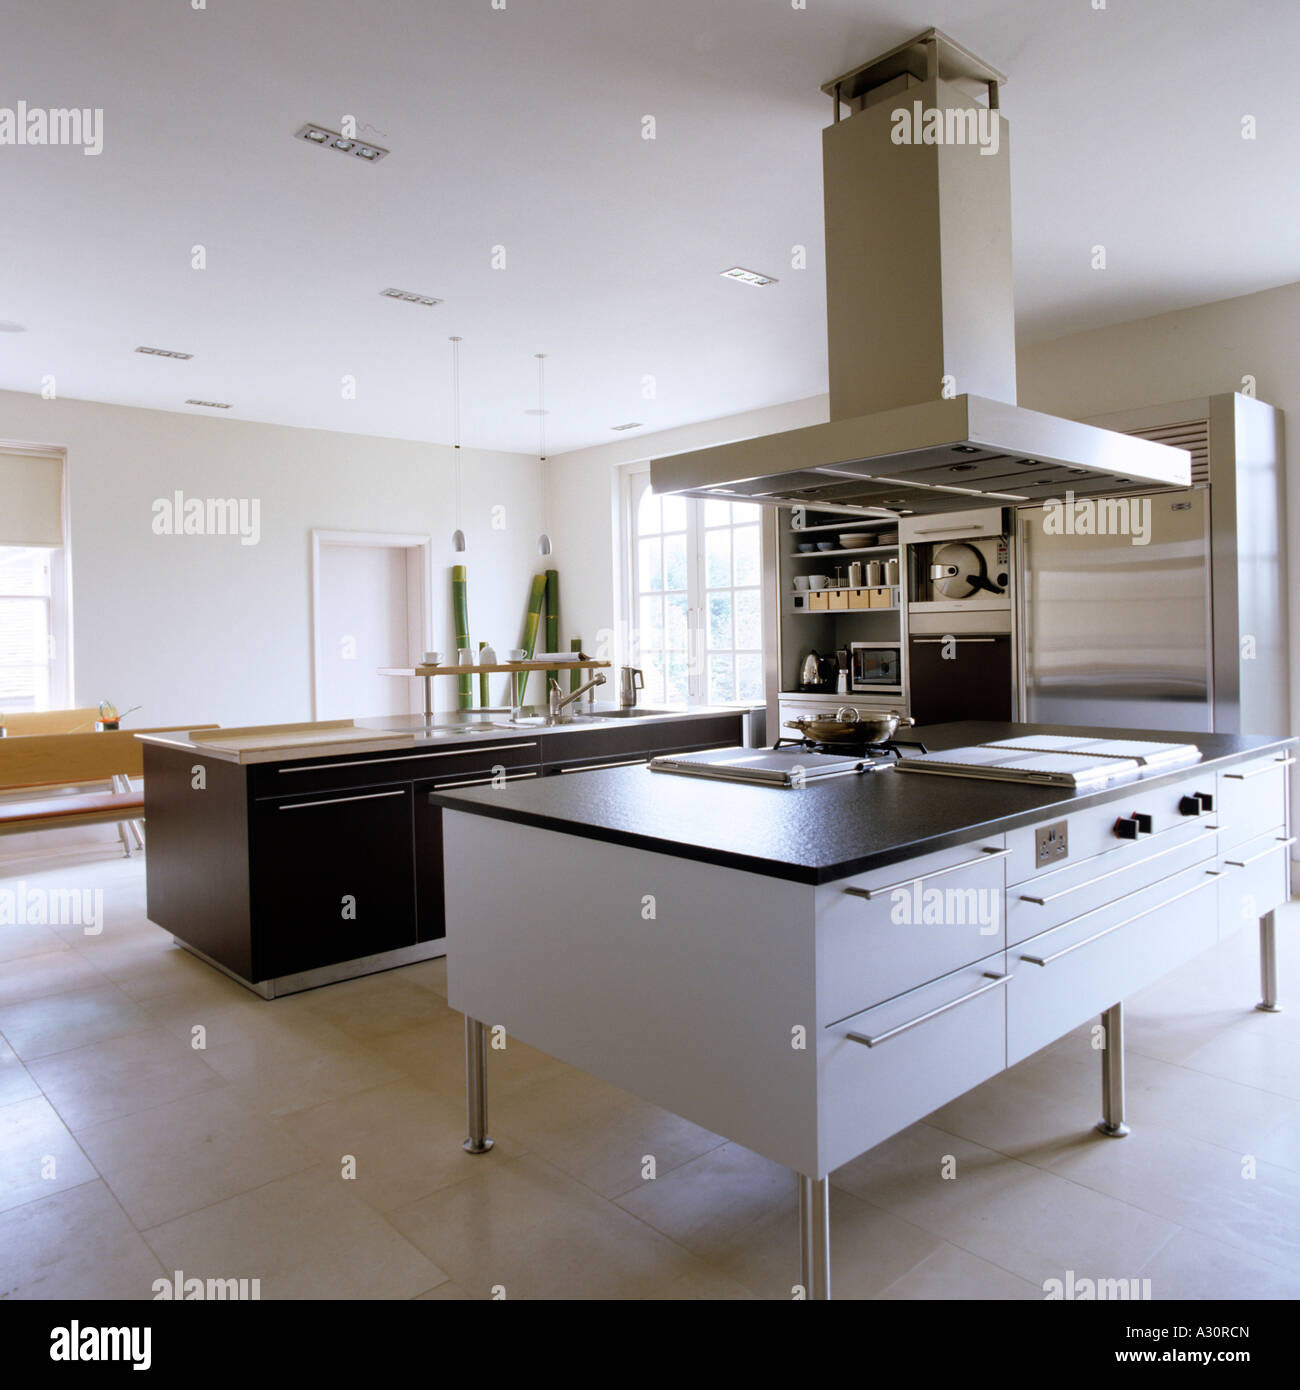 Kitchen Extractor Fans With Lights Kitchen Sohor